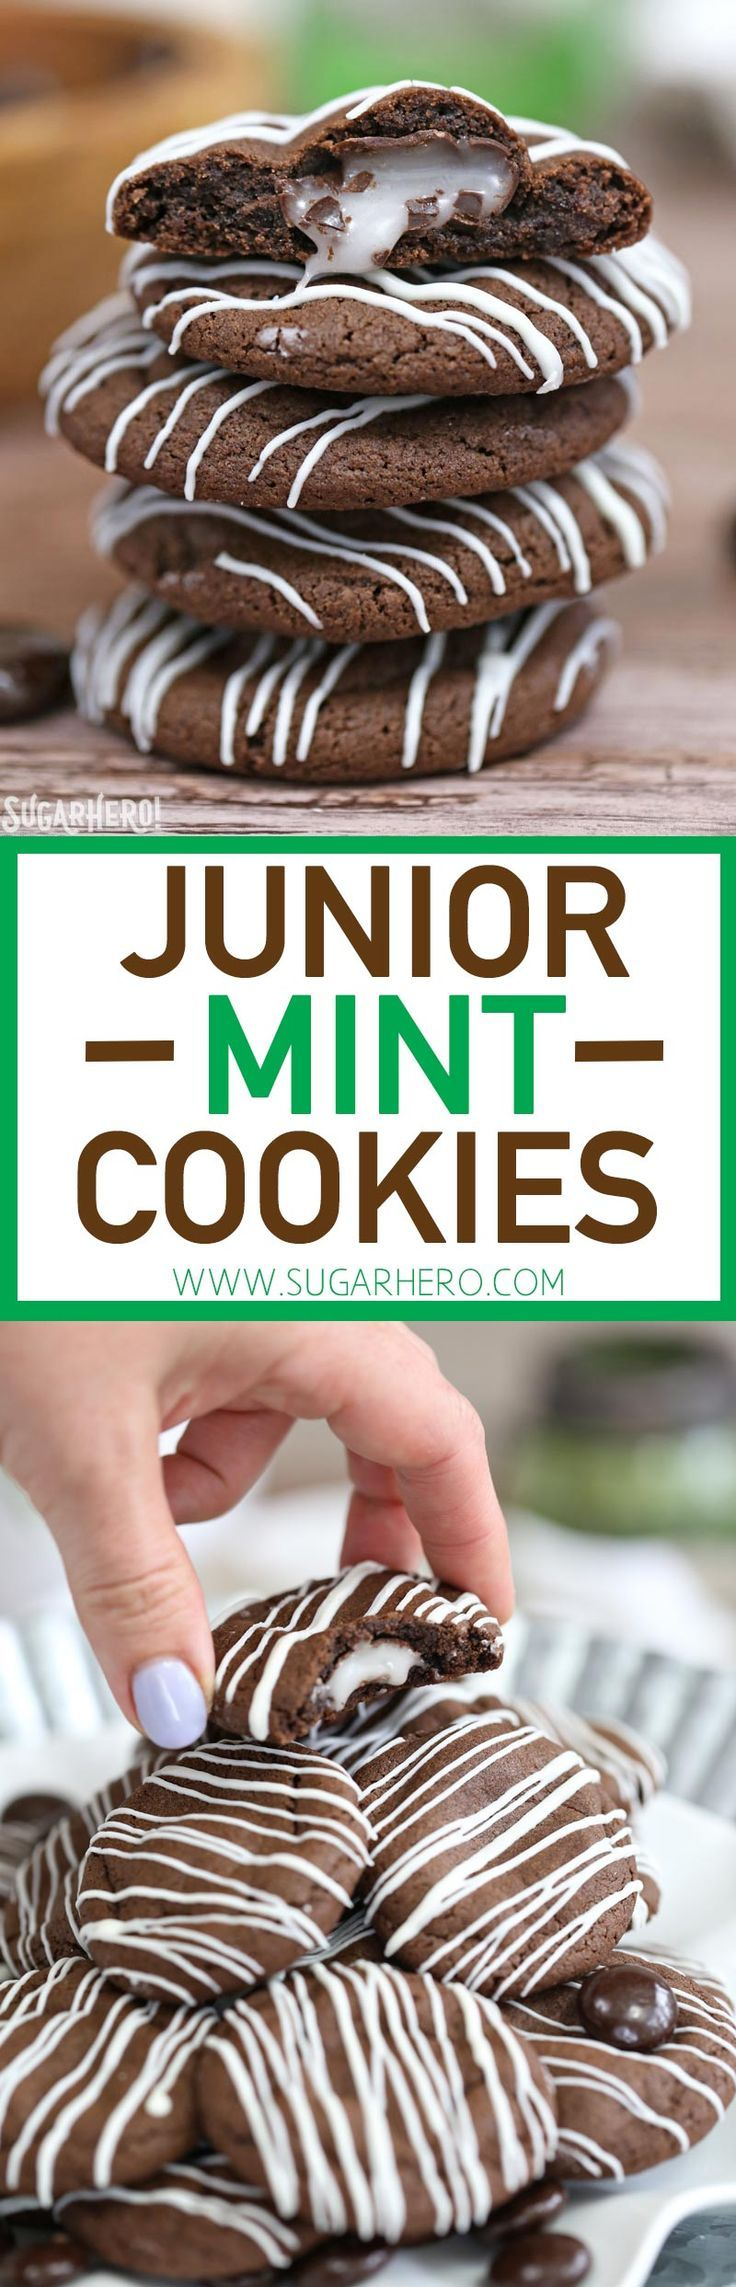 Junior Mint Cookies are soft and chewy chocolate-mint cookies, with a Junior Mint baked right into the center! | From SugarHero.com